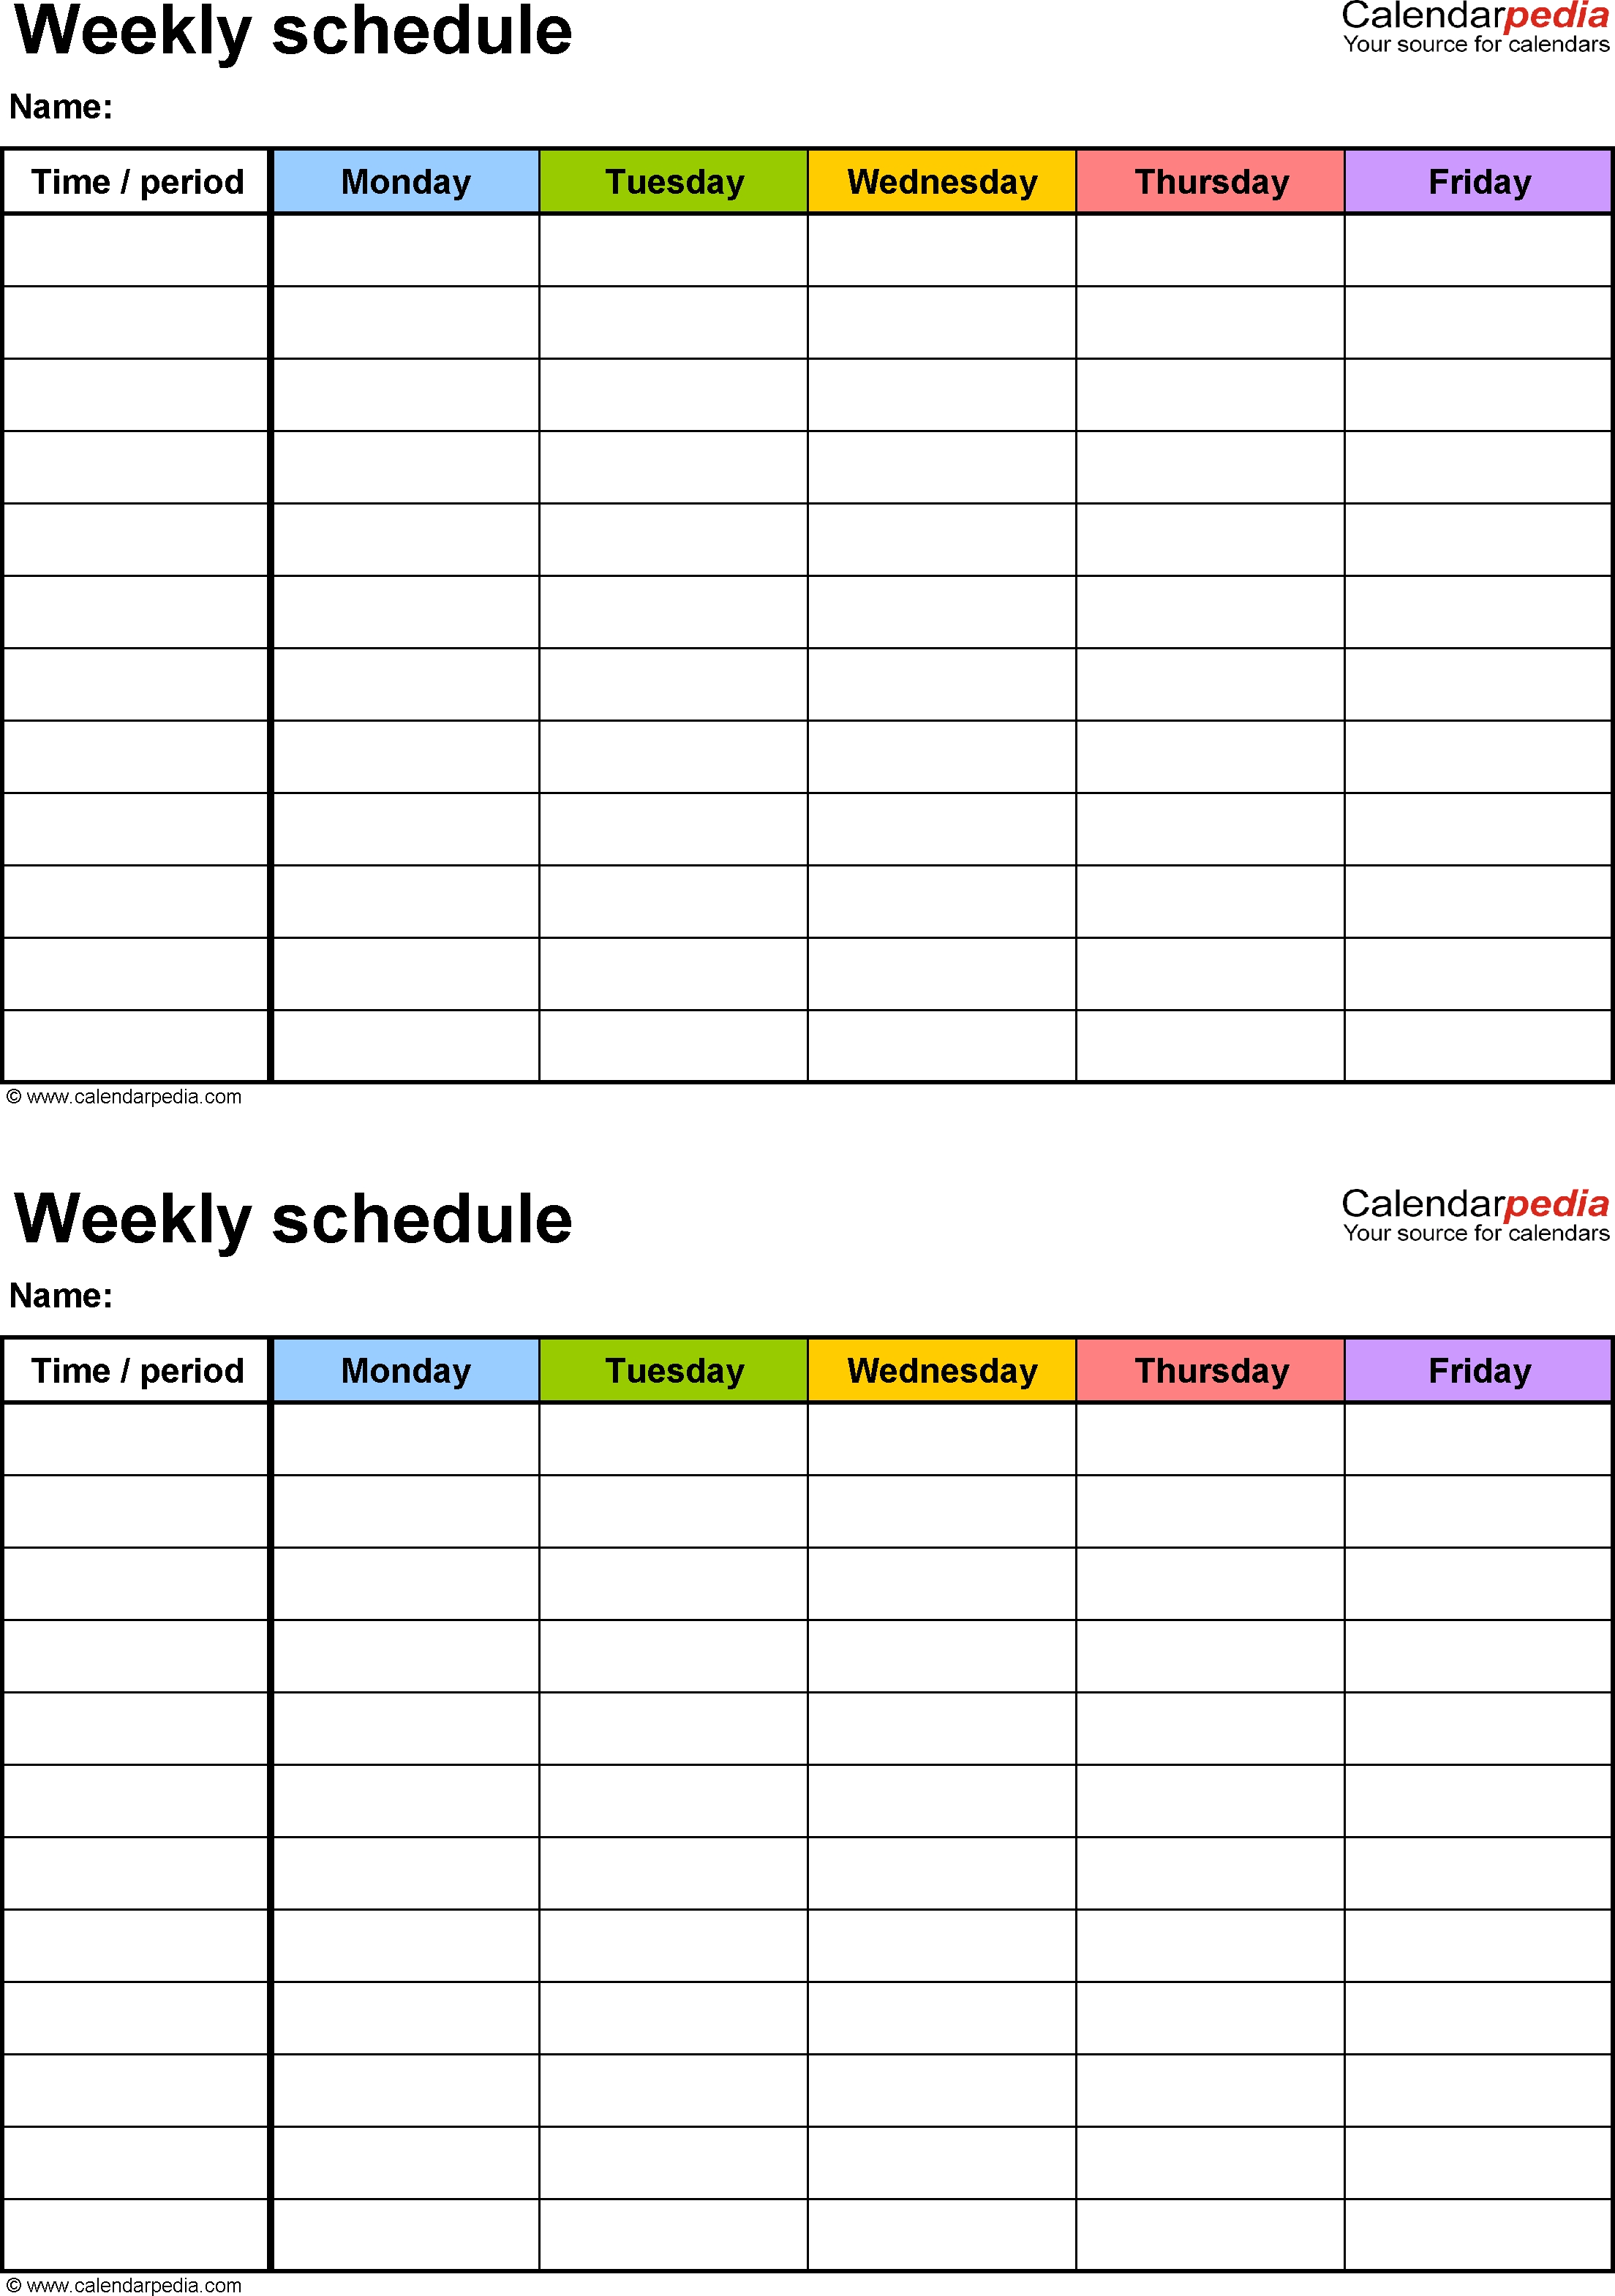 Free Weekly Schedule Templates For Excel - 18 Templates regarding Printable Weekly Schedule Flow Chart